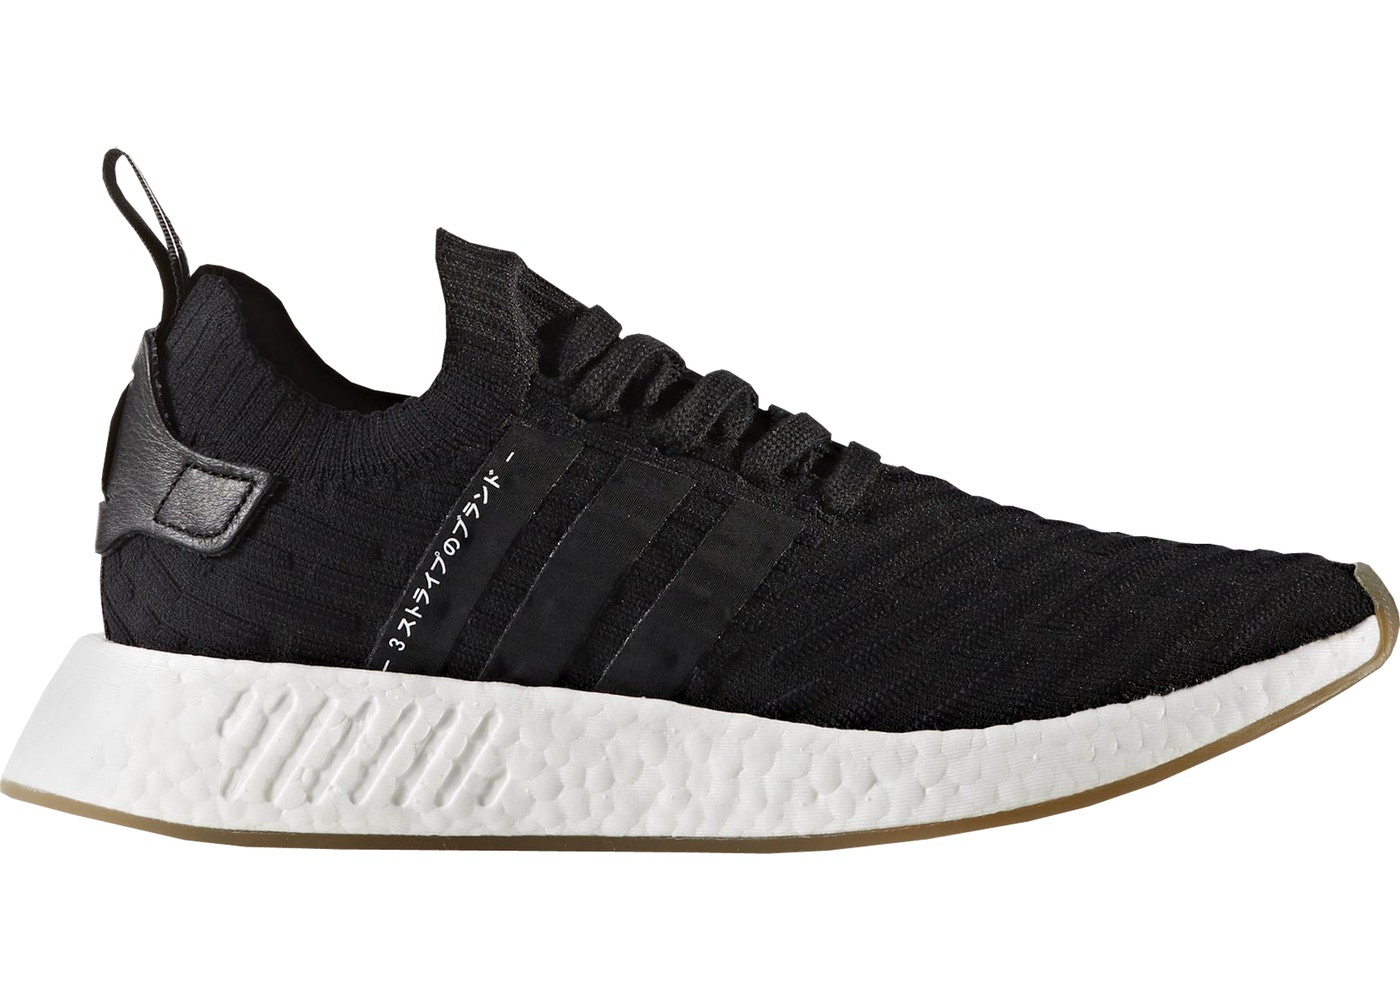 adidas NMD R2 Japan Core Black - BY9696